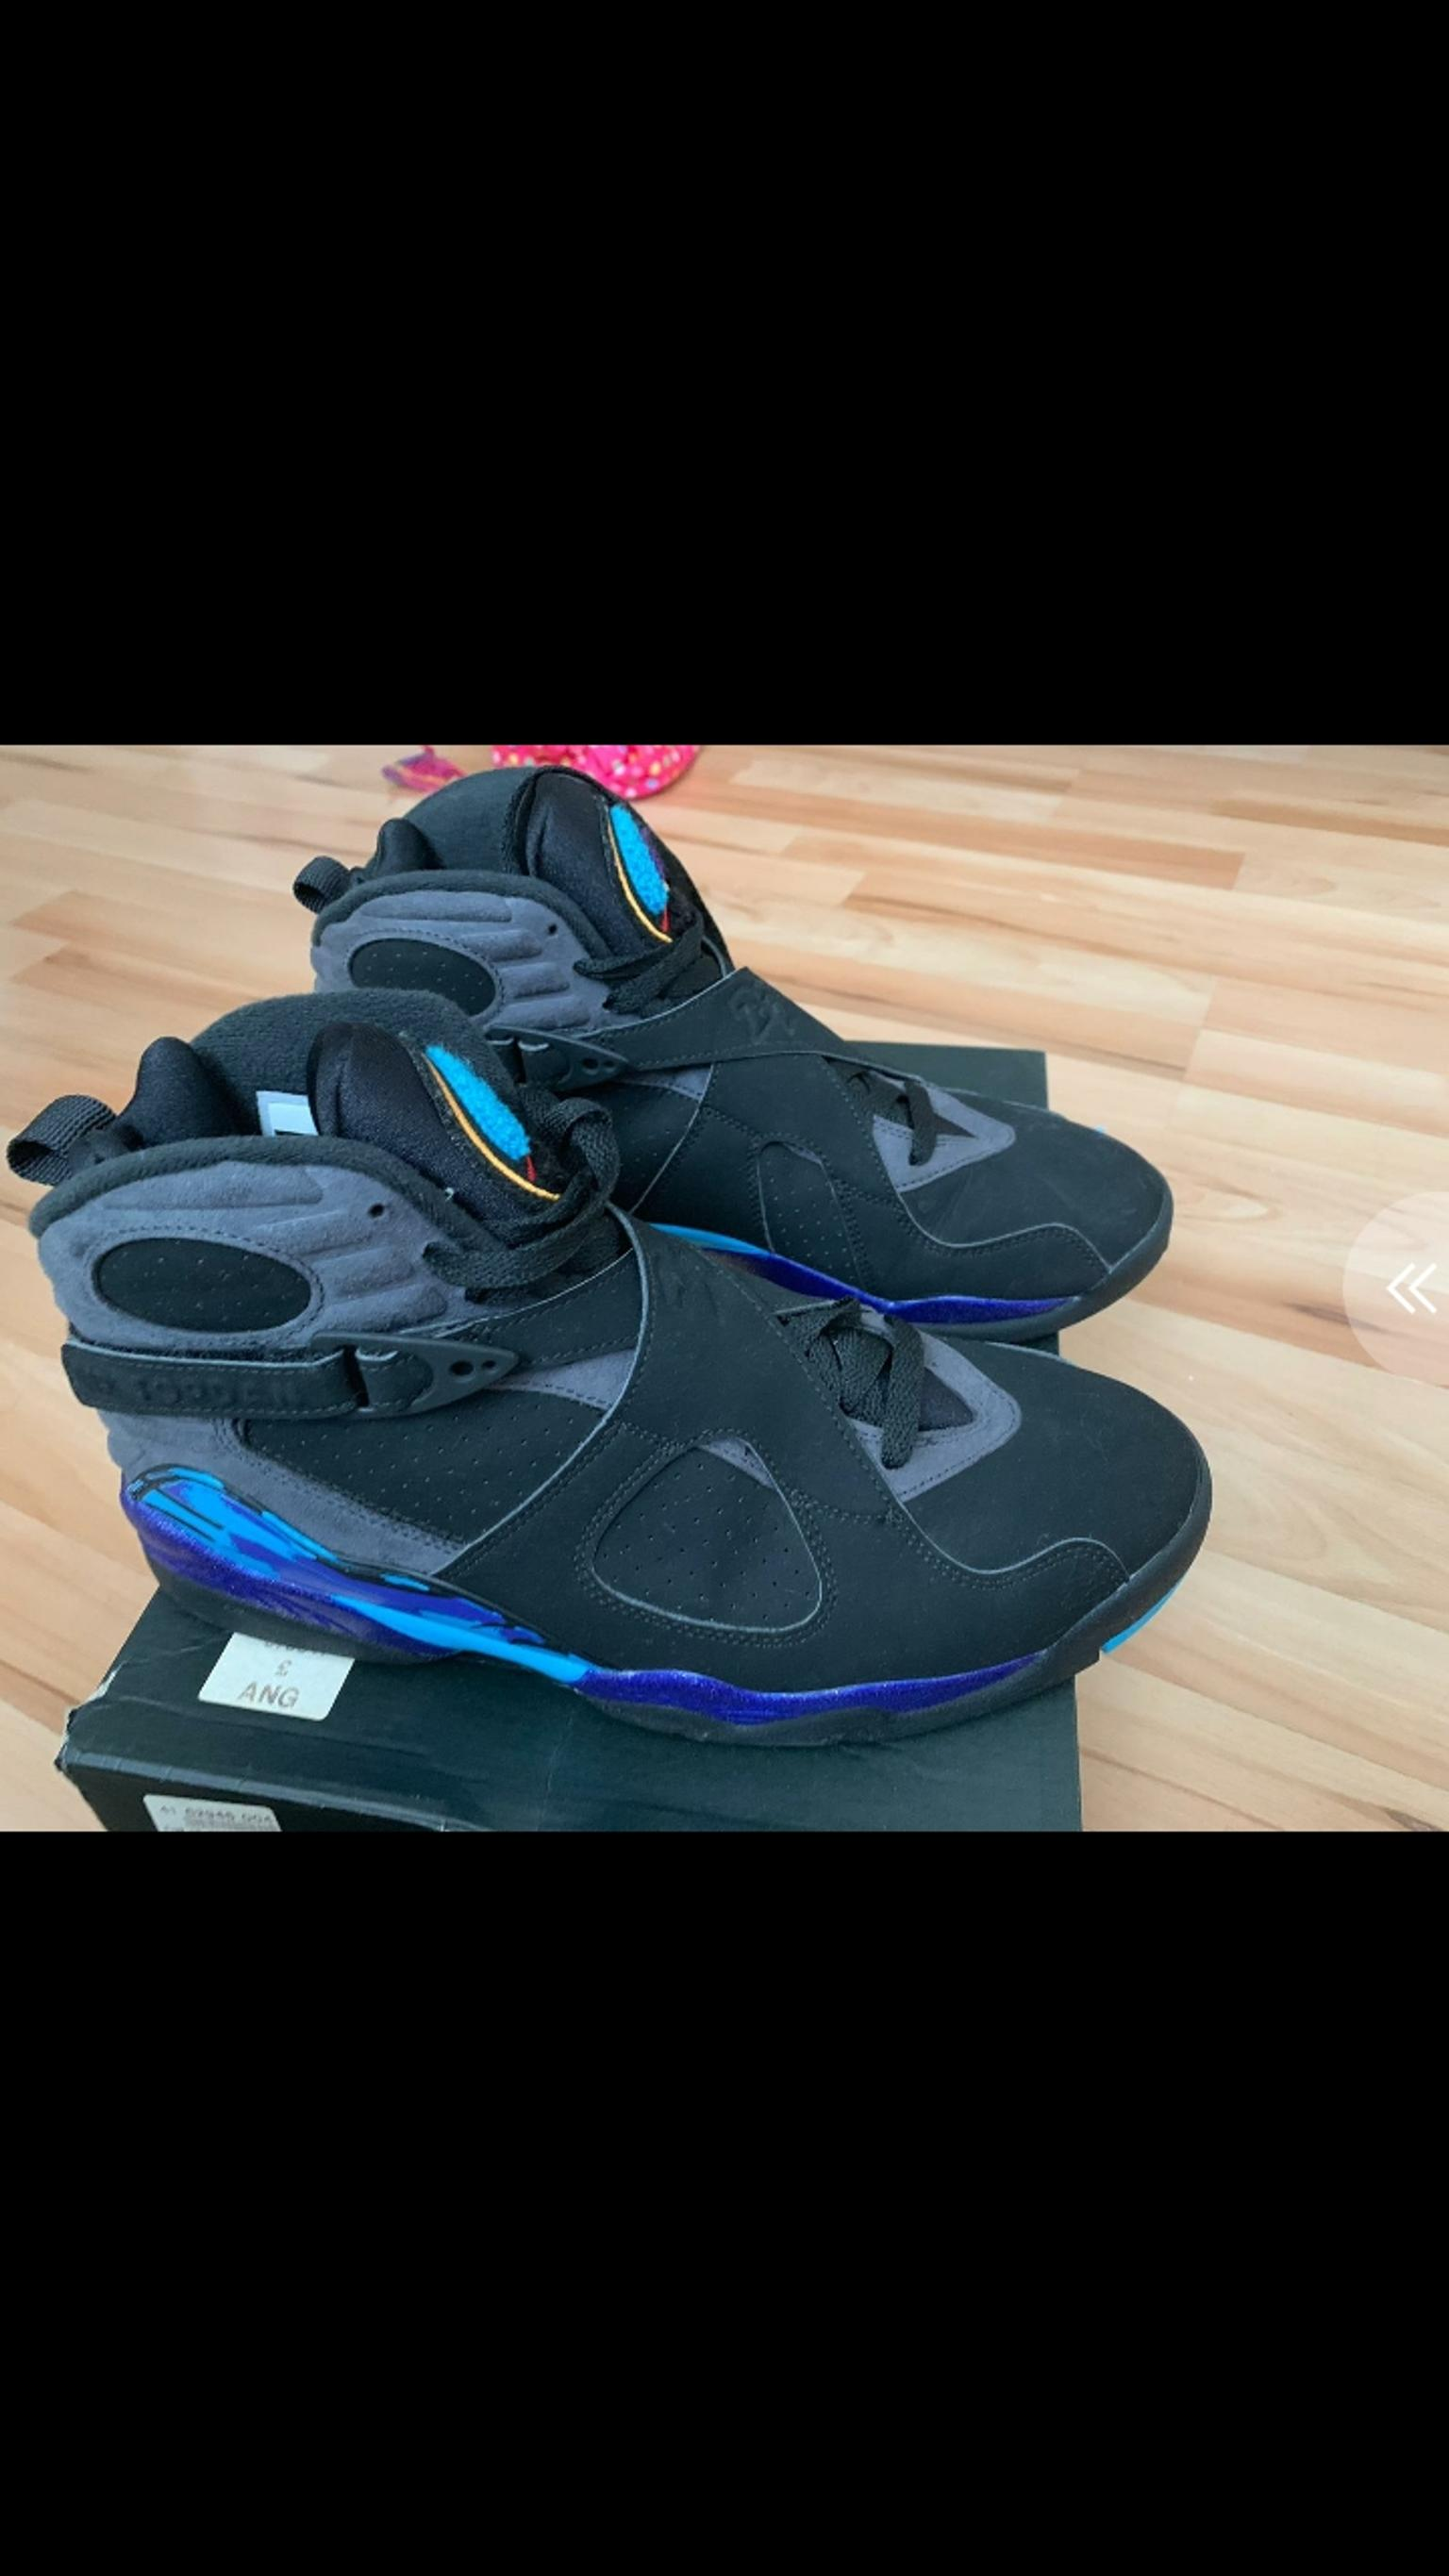 c9d94bfe539e NIKE AIR JORDAN RETRO 8 AQUA UK 8.5 in NG2 Nottingham for £100.00 for sale  - Shpock